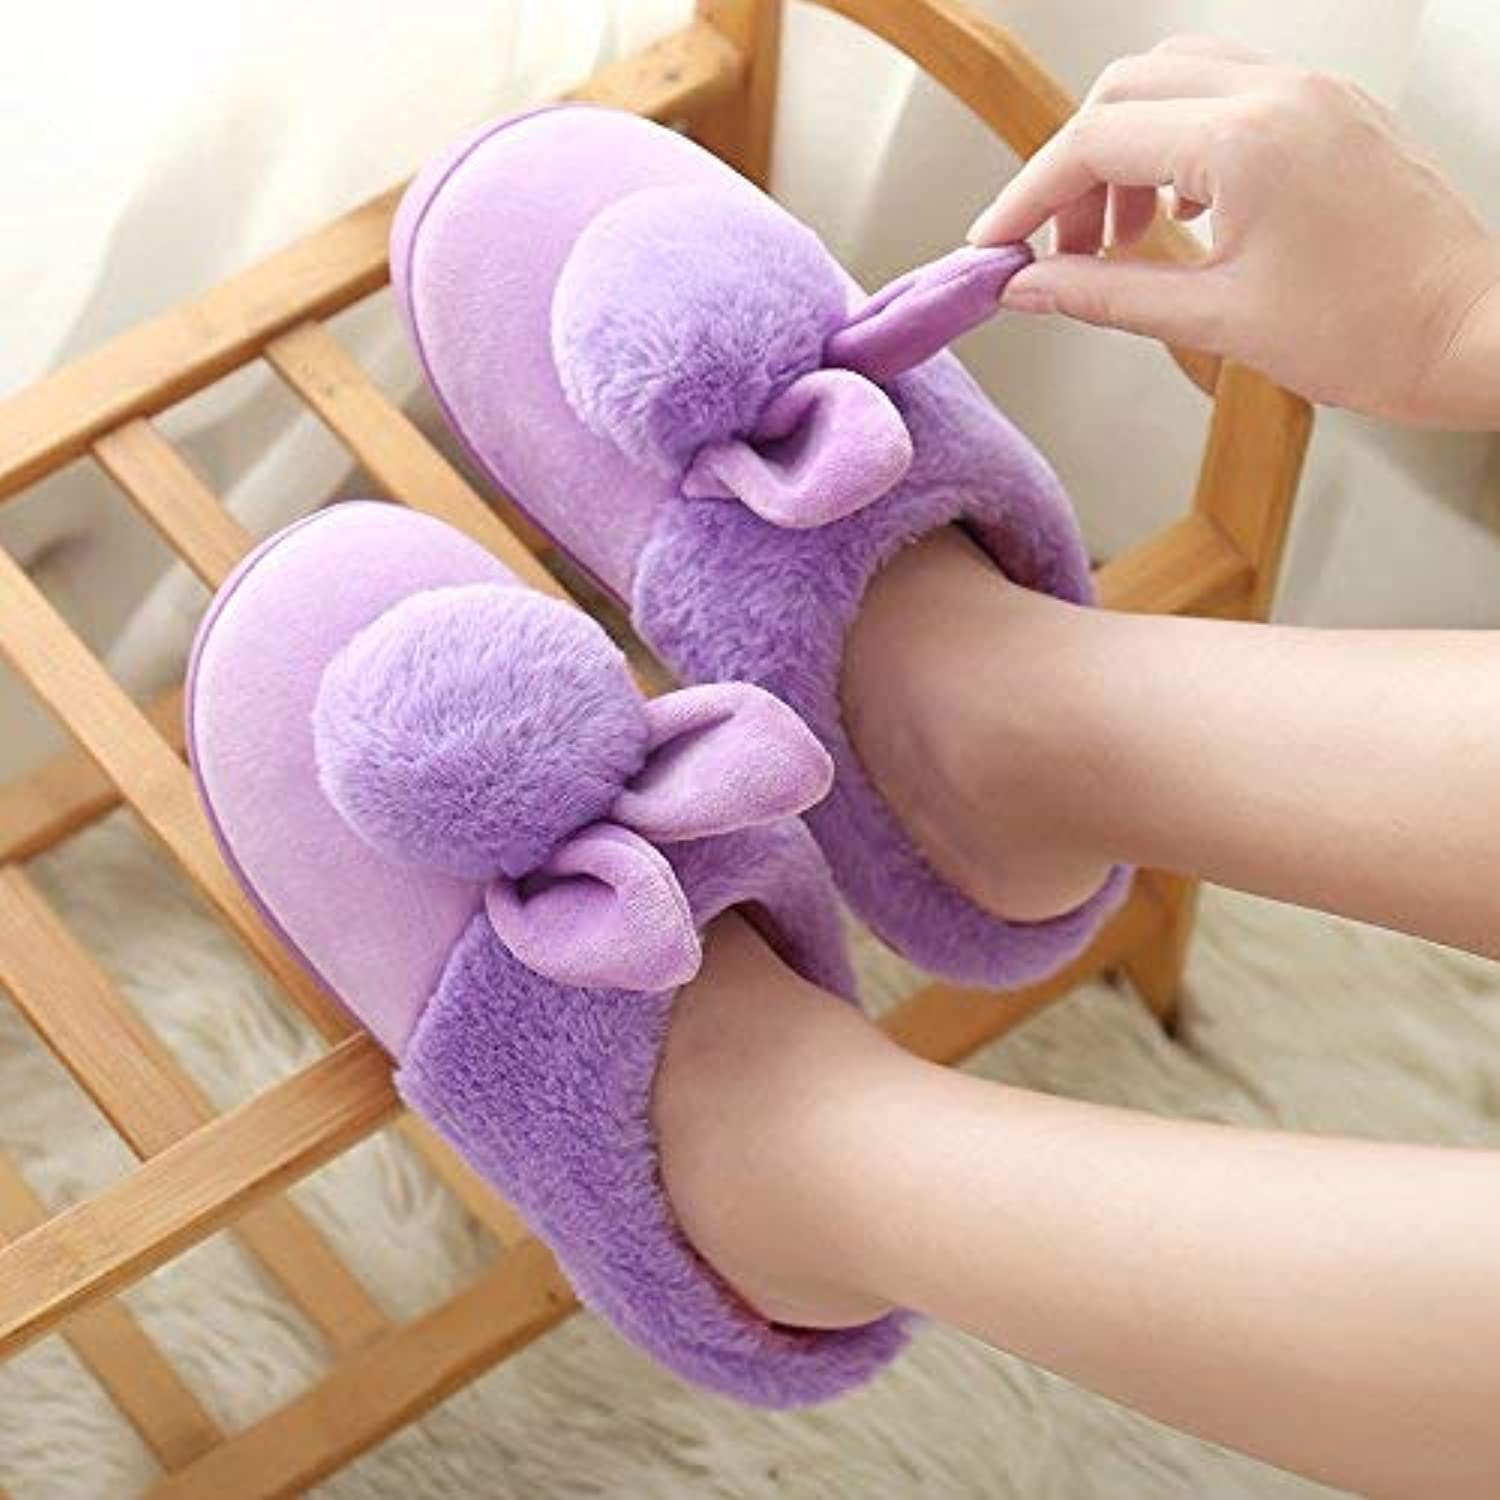 Lady Slippers Women 's Home Cotton Slippers Indoor Non Slip Keep Warm Slippers Small for Women Cute Ball Purple Slippers